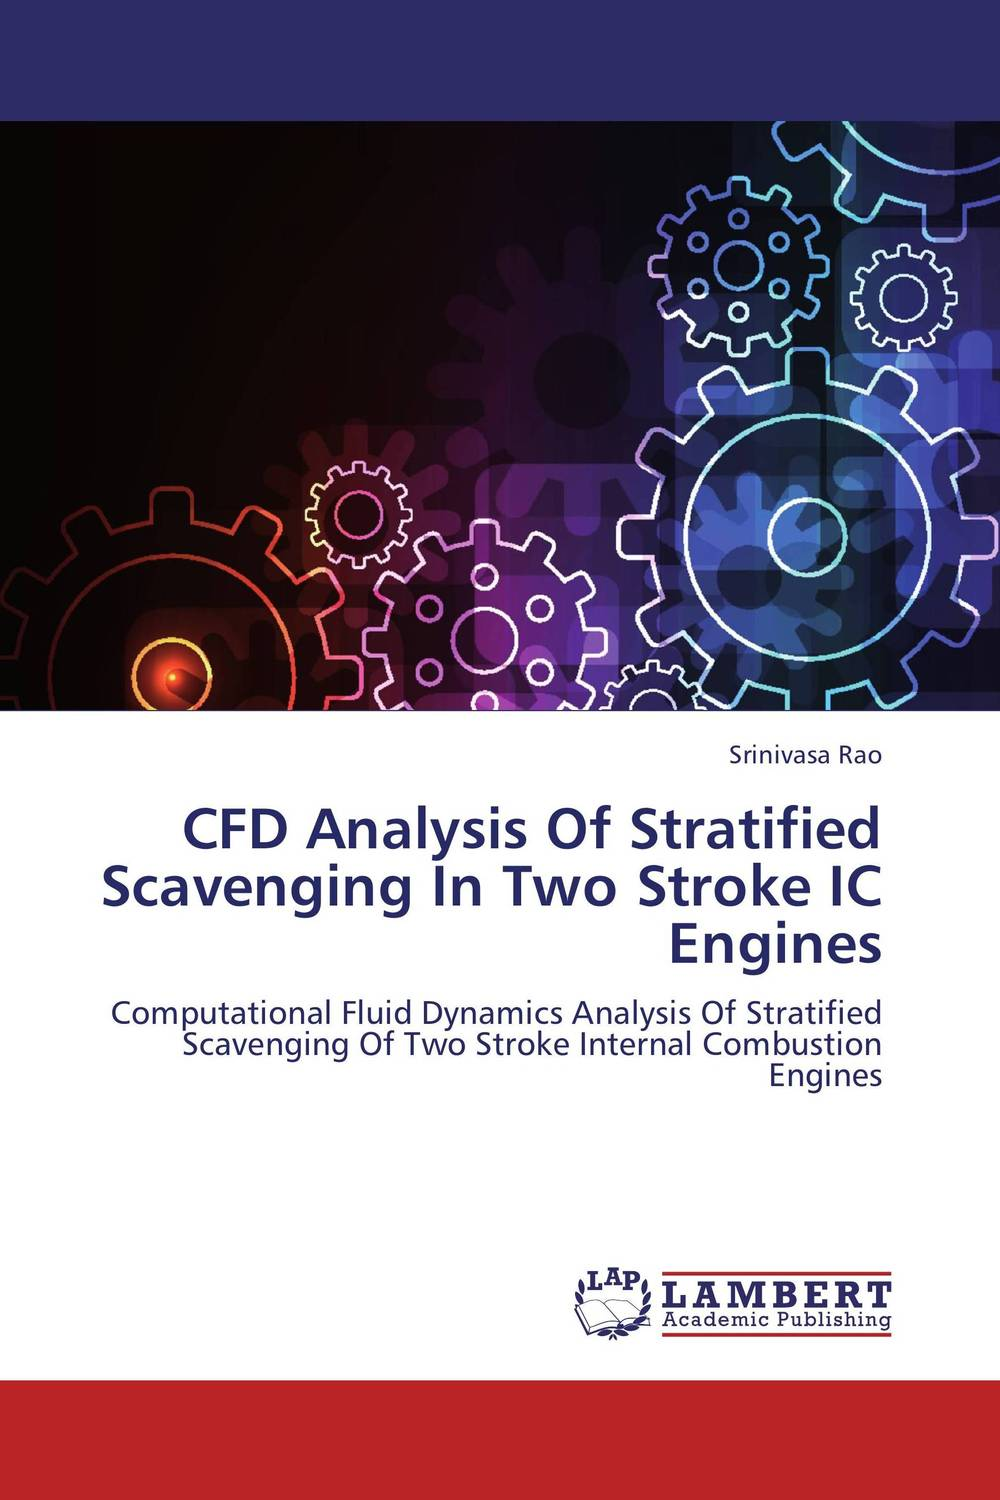 CFD Analysis Of Stratified Scavenging In Two Stroke IC Engines a stroke of midnight